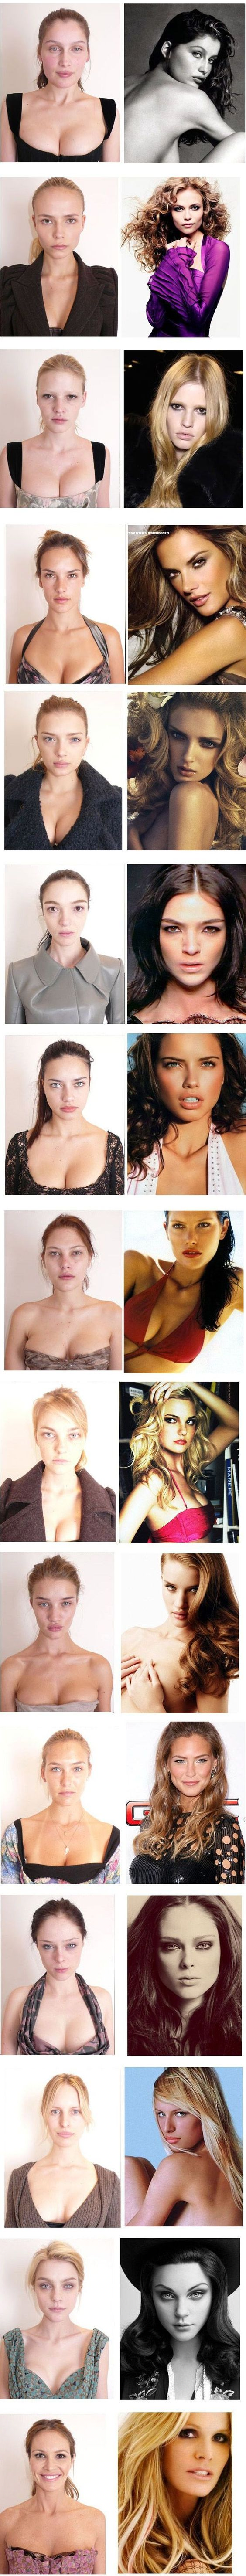 Victoria's secret models without make up